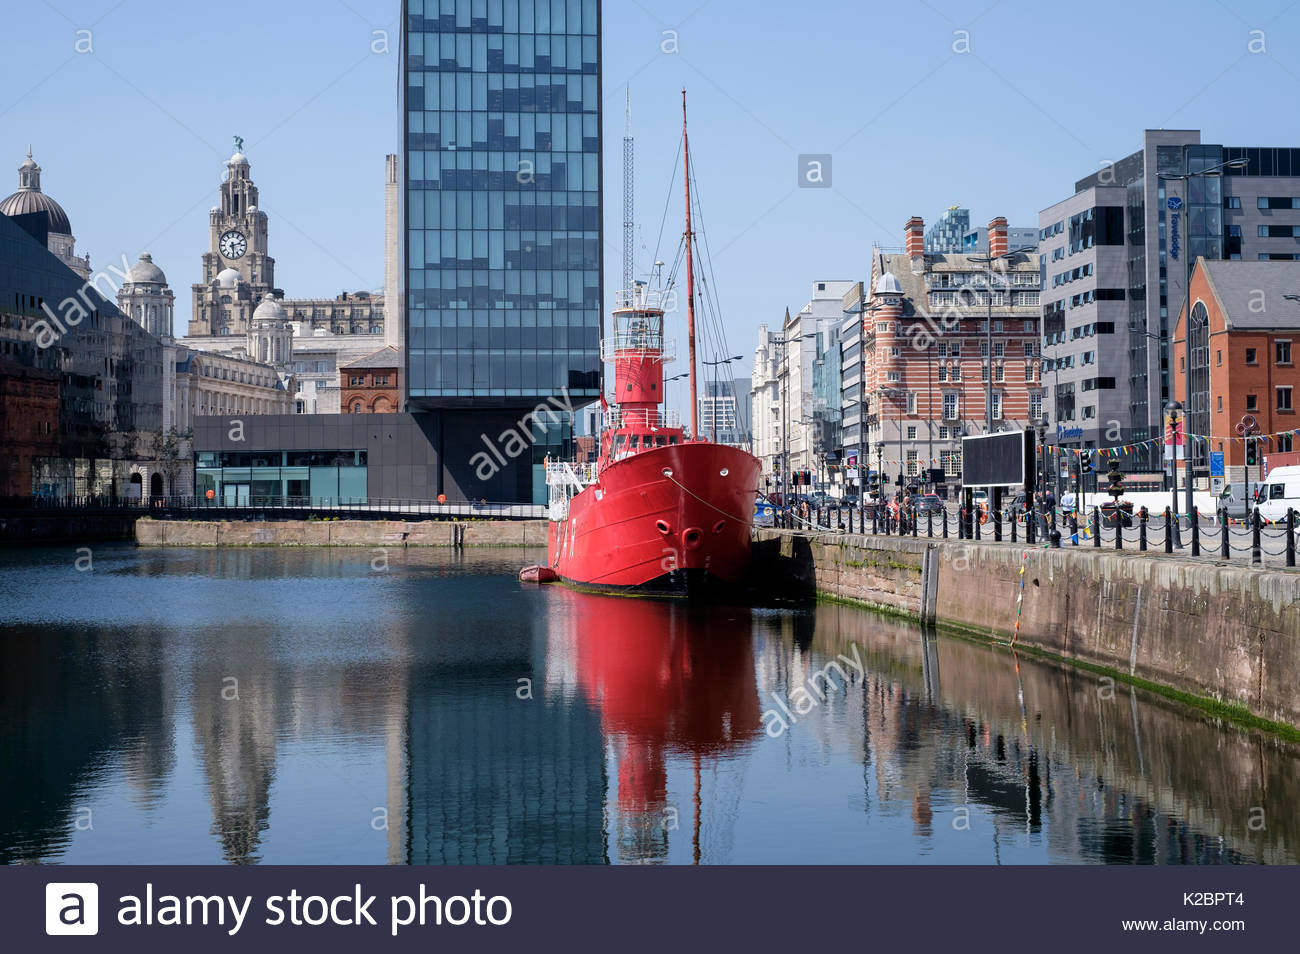 Boat moored at Canning Dock, part of the Albert Dock complex, Liverpool, Merseyside, UK, June 2015. All non-editorial Stock Photo